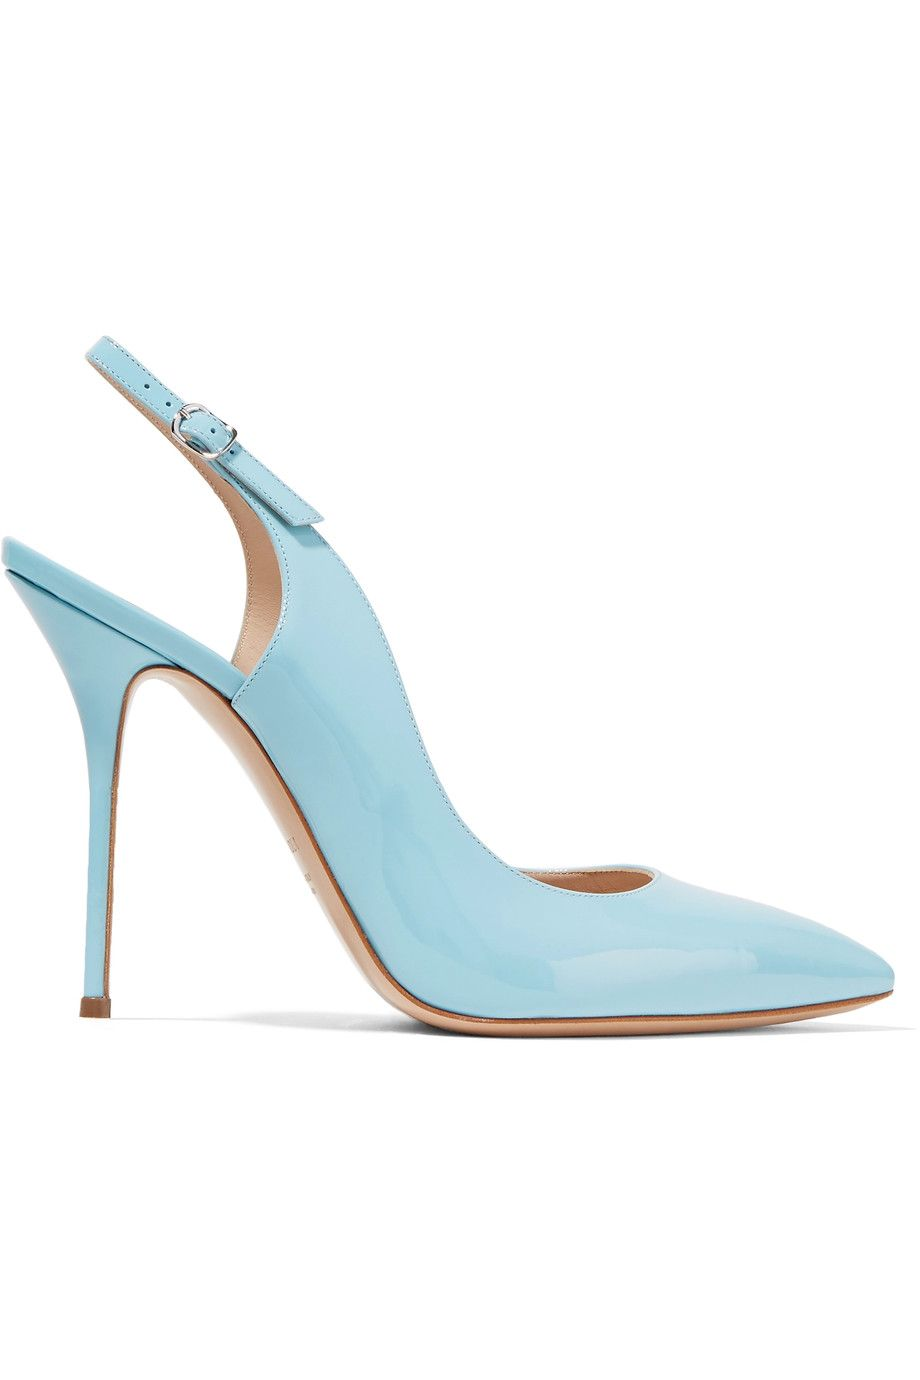 Pumps & High Heels for Women On Sale in Outlet, Green, Leather, 2017, 7.5 Casadei